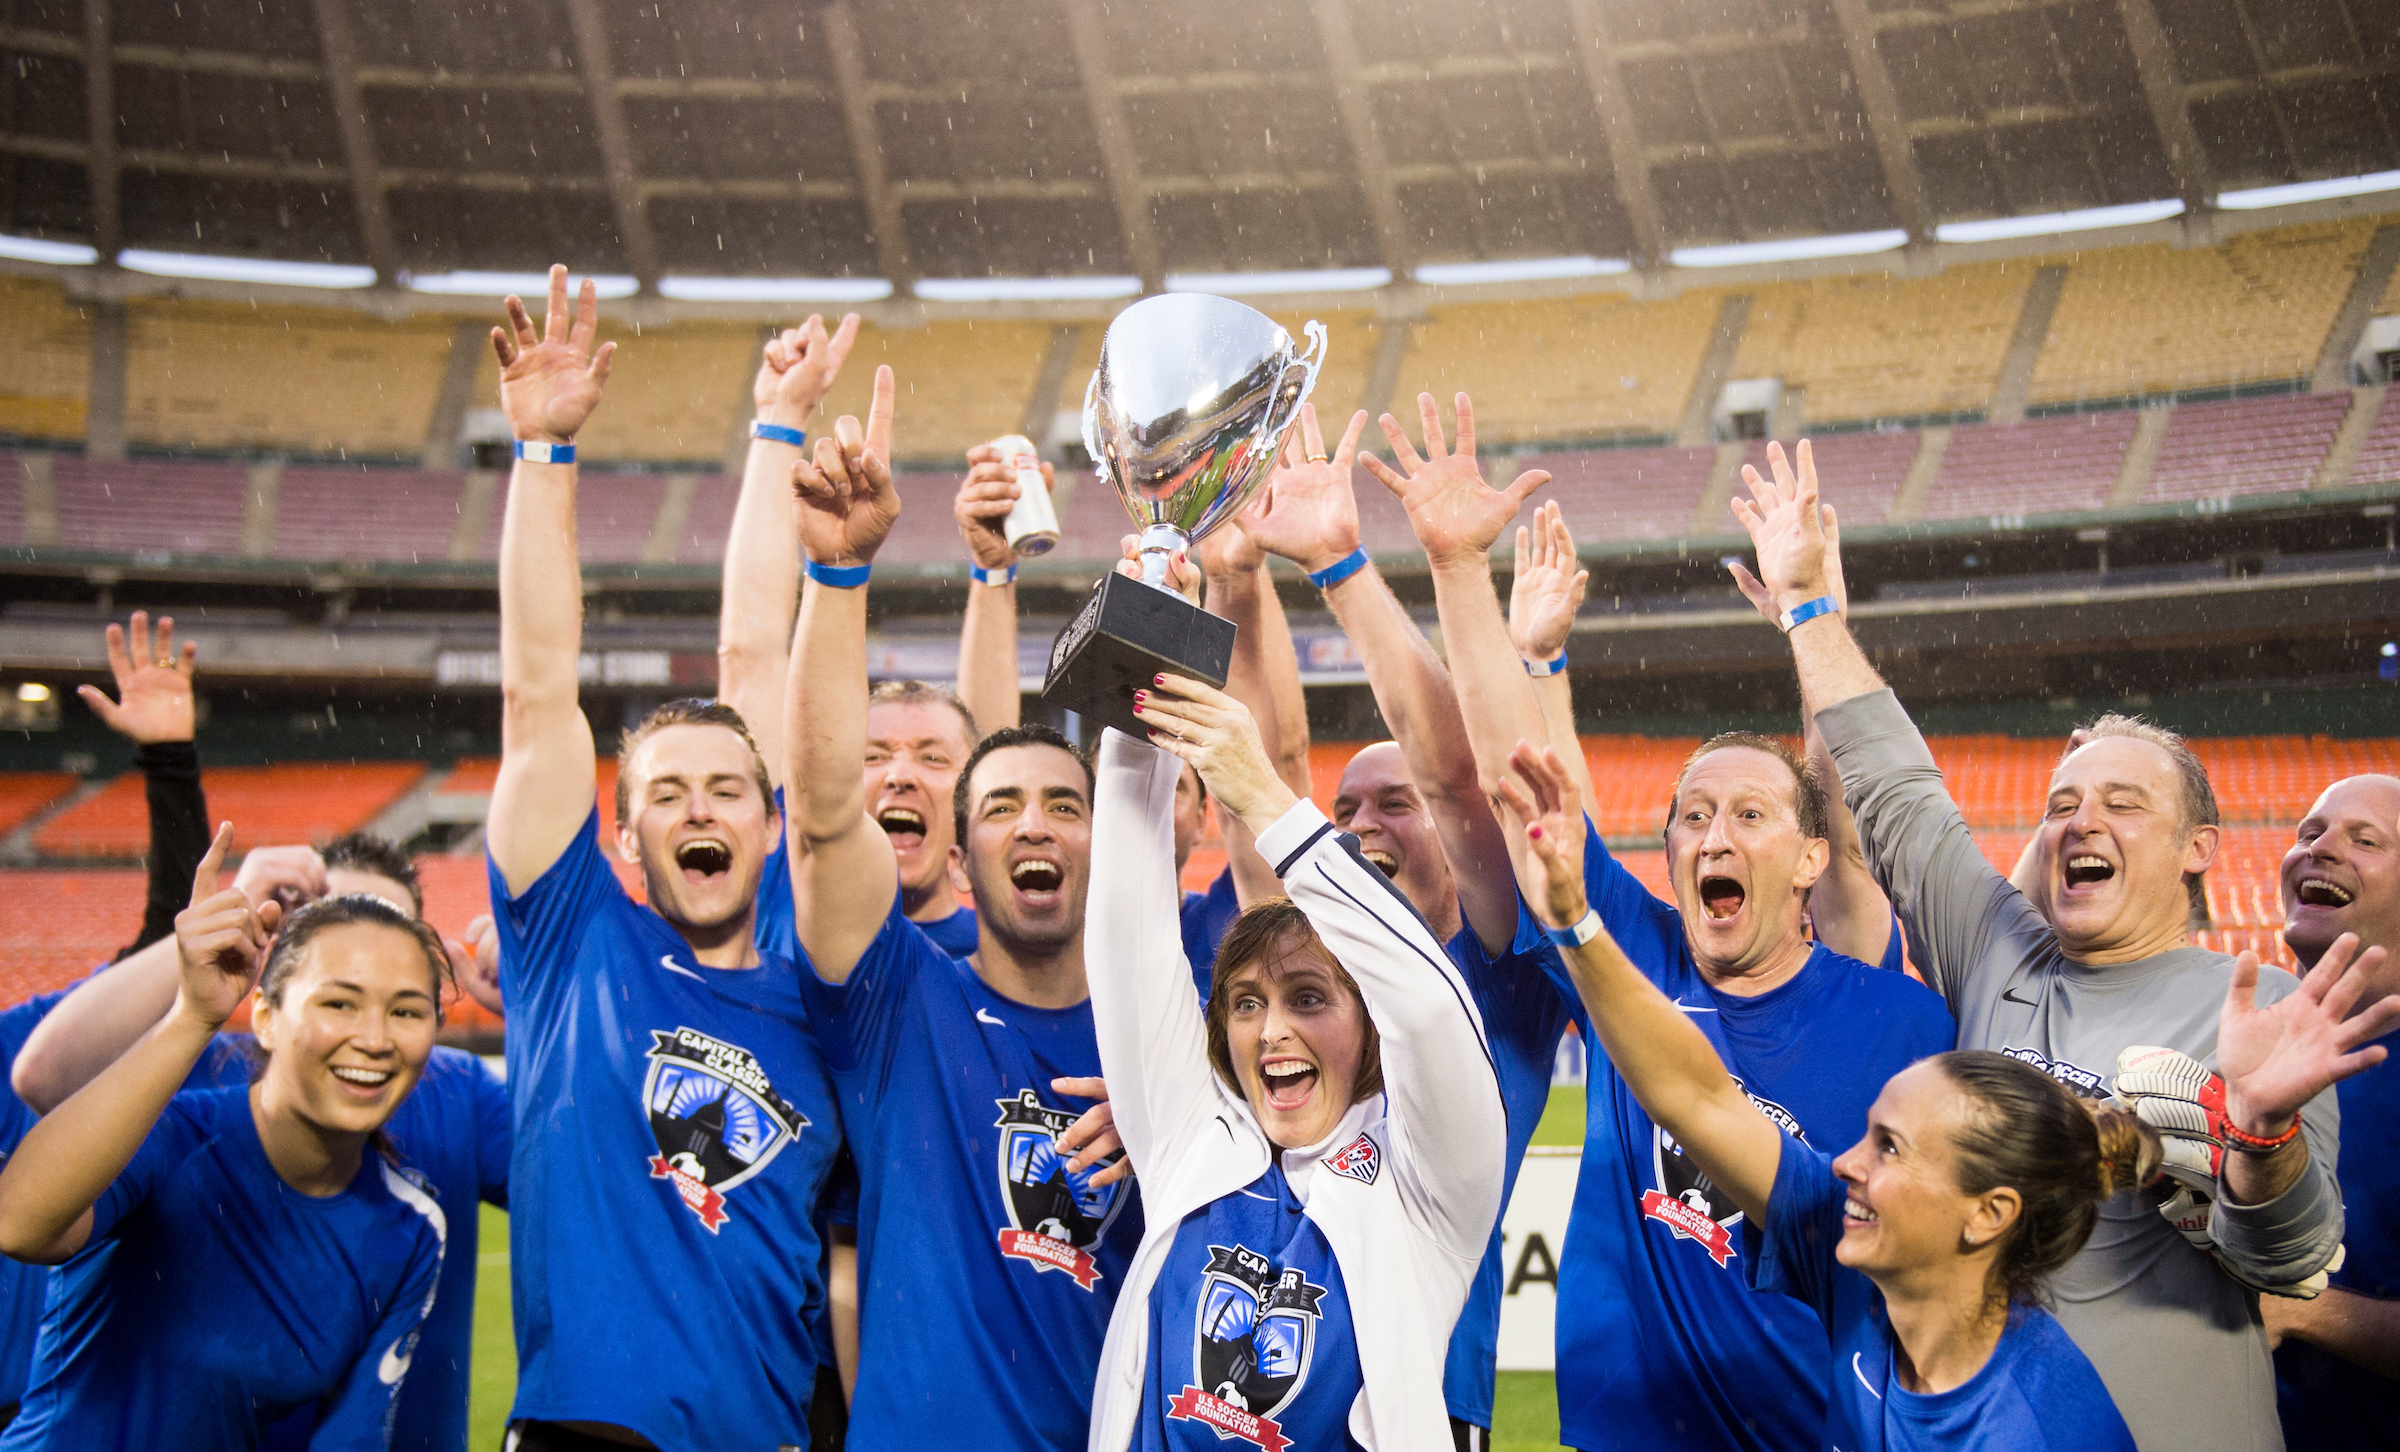 MAY 23: Democrats hoist their trophy after defeating the Republicans 5-3 at RFK Stadium in the fifth annual Capitol Soccer Classic's congressional game on Tuesday, May 23, 2017. (Photo By Bill Clark/CQ Roll Call)